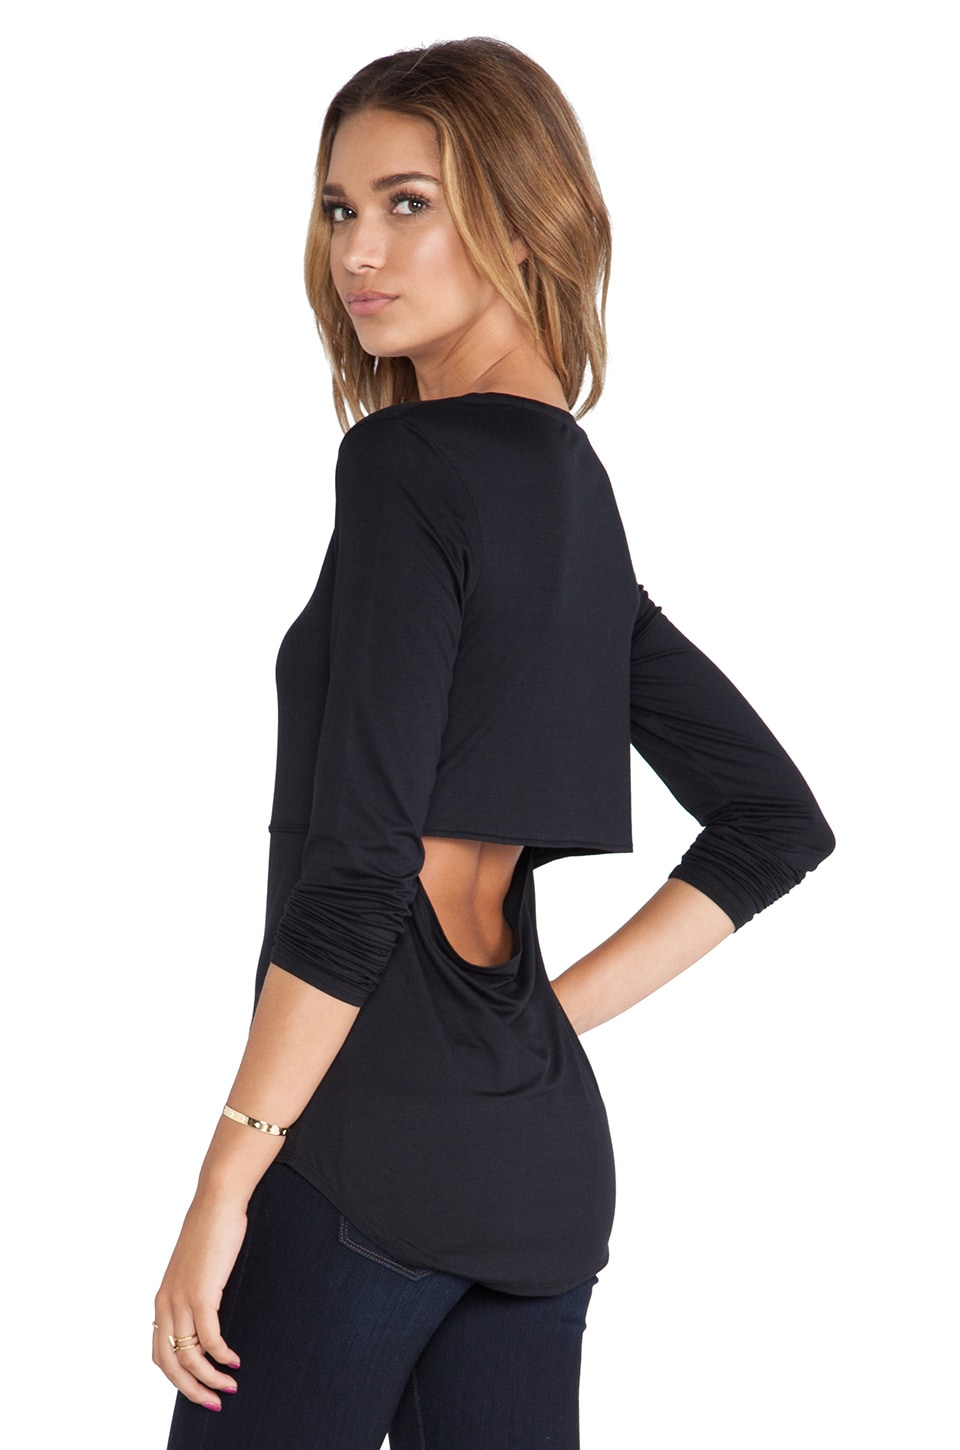 Feel the Piece Jolee Long Sleeve Tee in Black